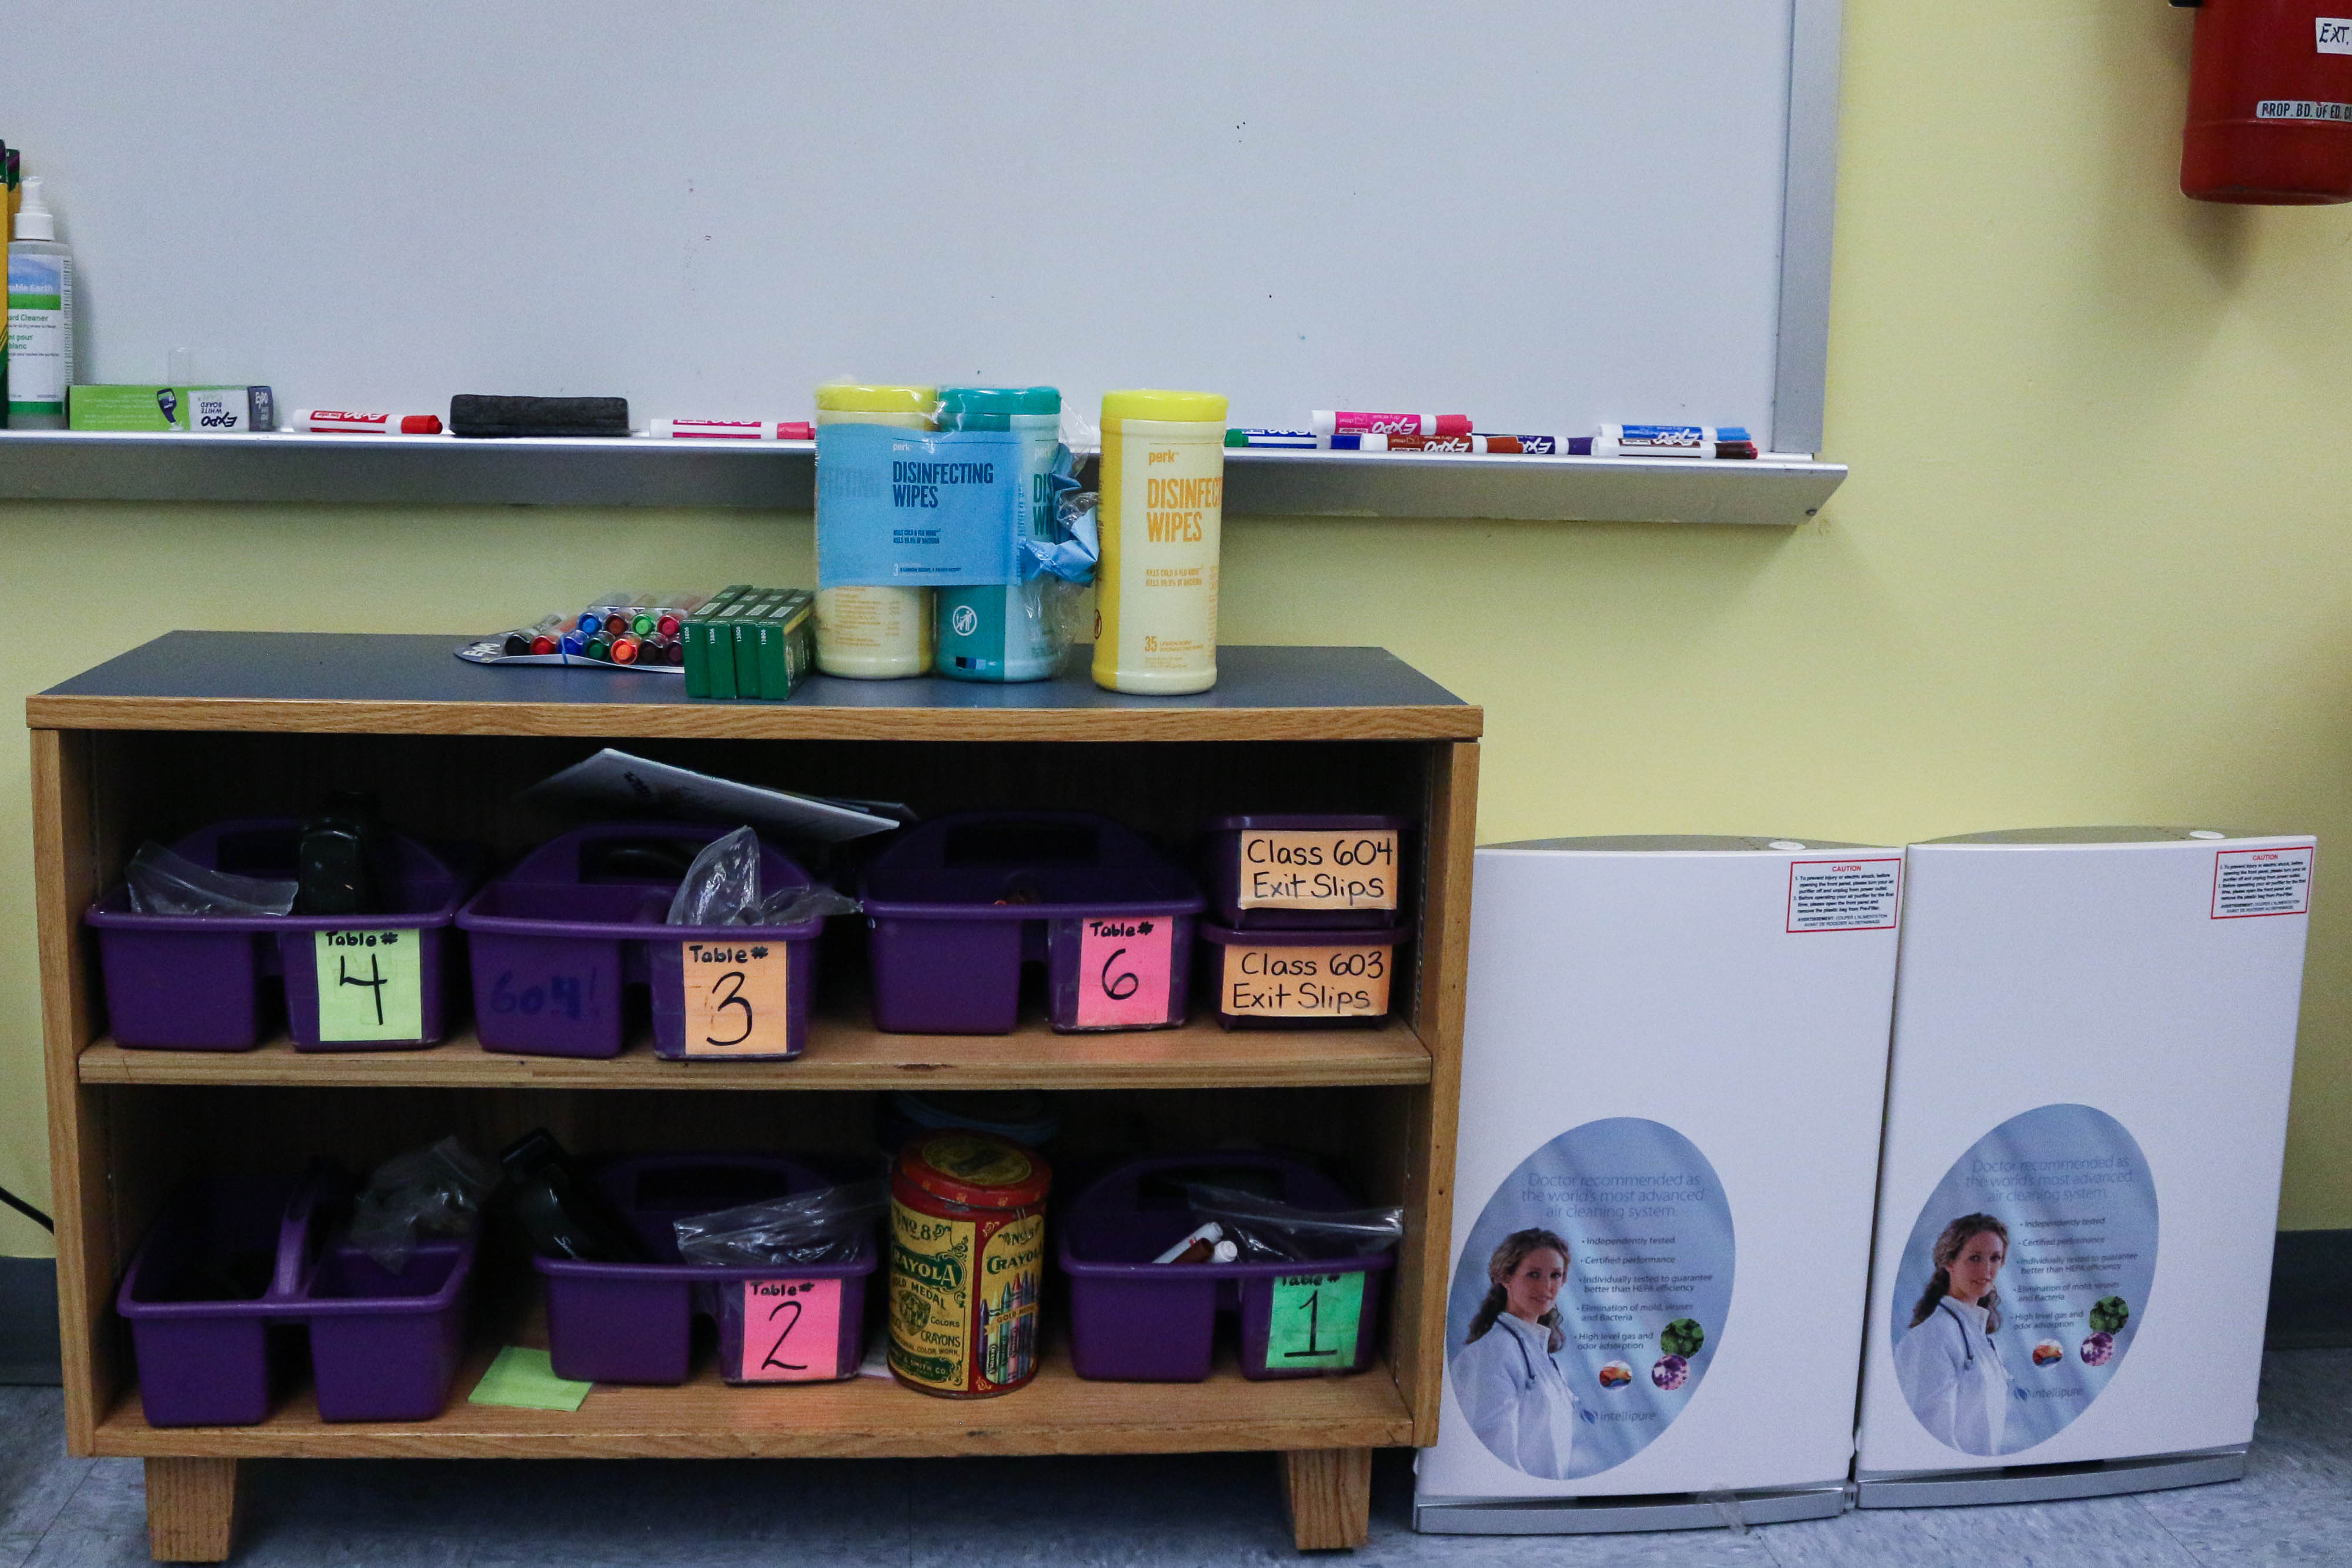 Two Intellipure air purifiers sit next to a storage shelf and a whiteboard in a New York City classroom.